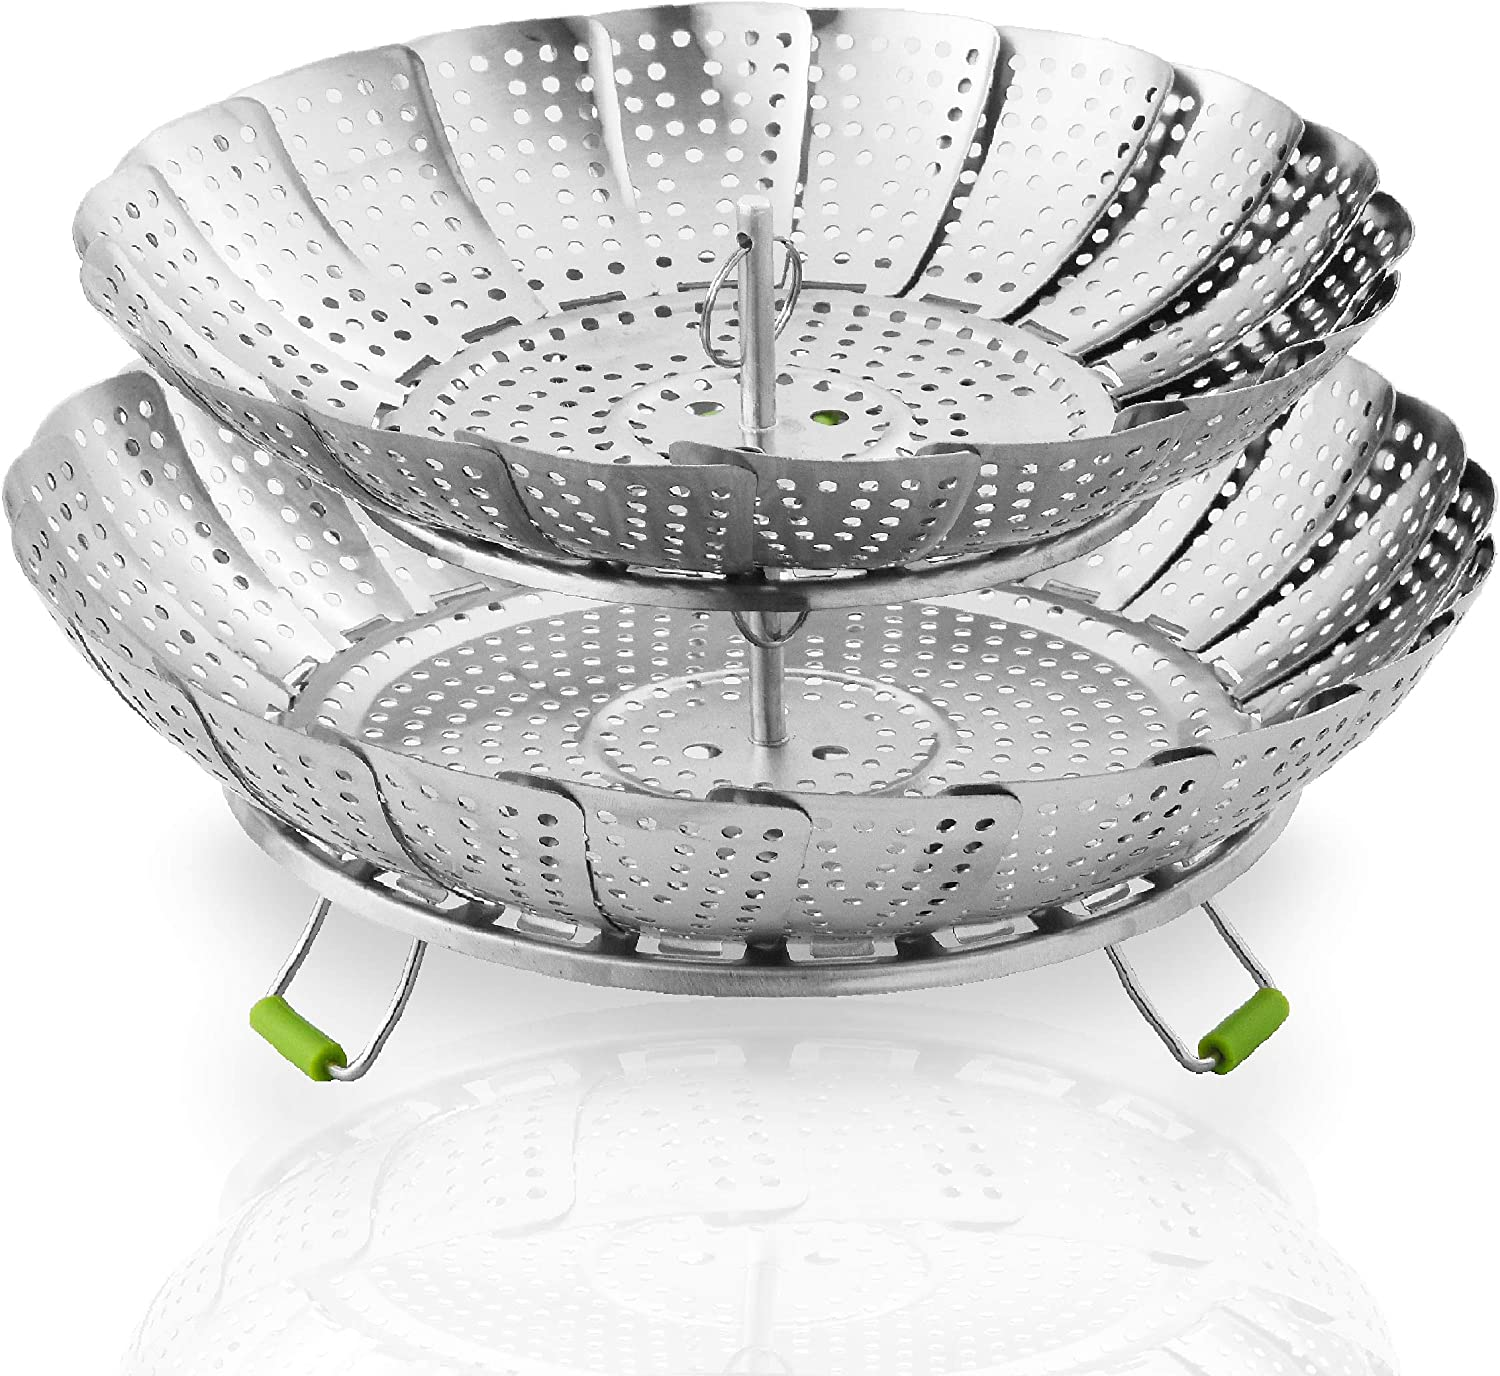 """Food Steamer Baskets For Cooking 2 Layers - Expandable & Collapsible Vegetable Steamer Basket Stainless Steel (7"""" - 10.8"""") - Easy To Use Cooking Steamer Basket For Instant Pot Steamer Insert w/Handle"""